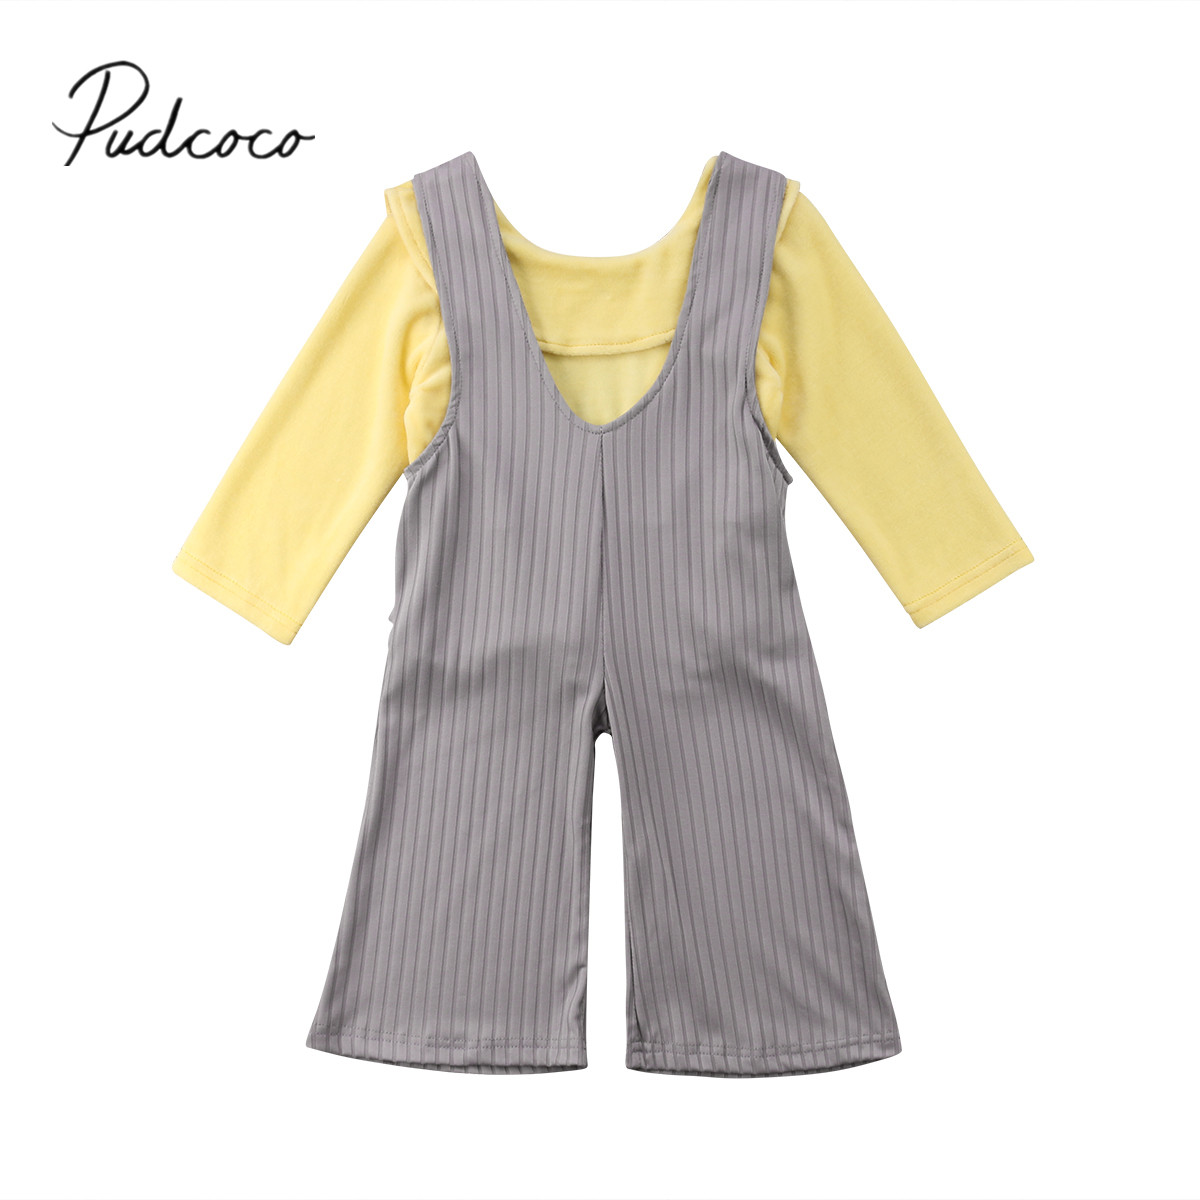 2018 Brand New 2-7Y Toddler Baby Girls Summer Fashion Clothes Sets 2PCS Long Sleeve Yellow T-Shirts Tops Loos Wide Leg Overalls